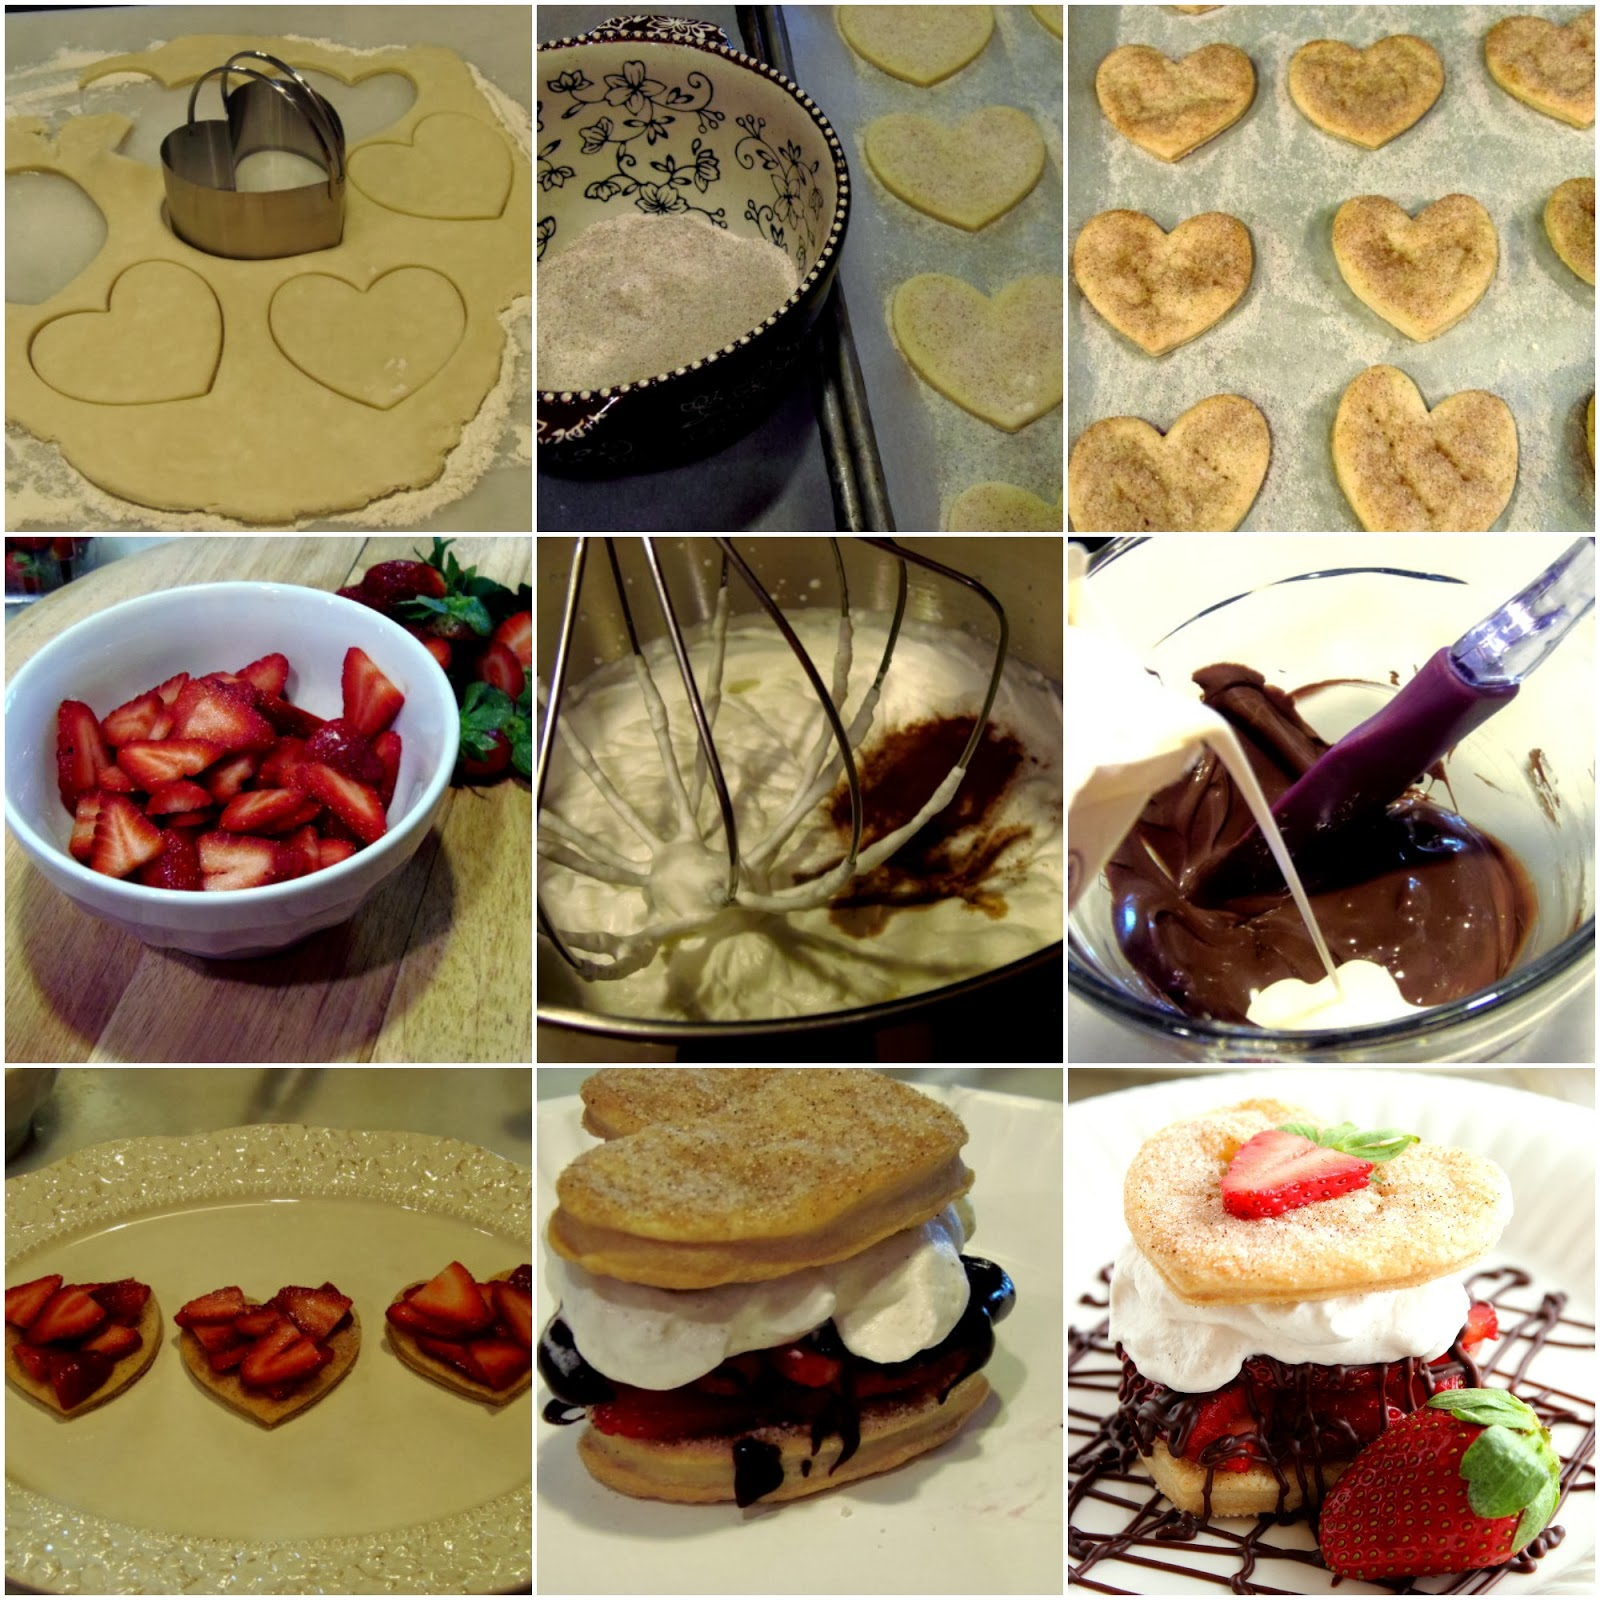 Kudos Kitchen By Renee - Deconstructed Strawberry Pie Recipe